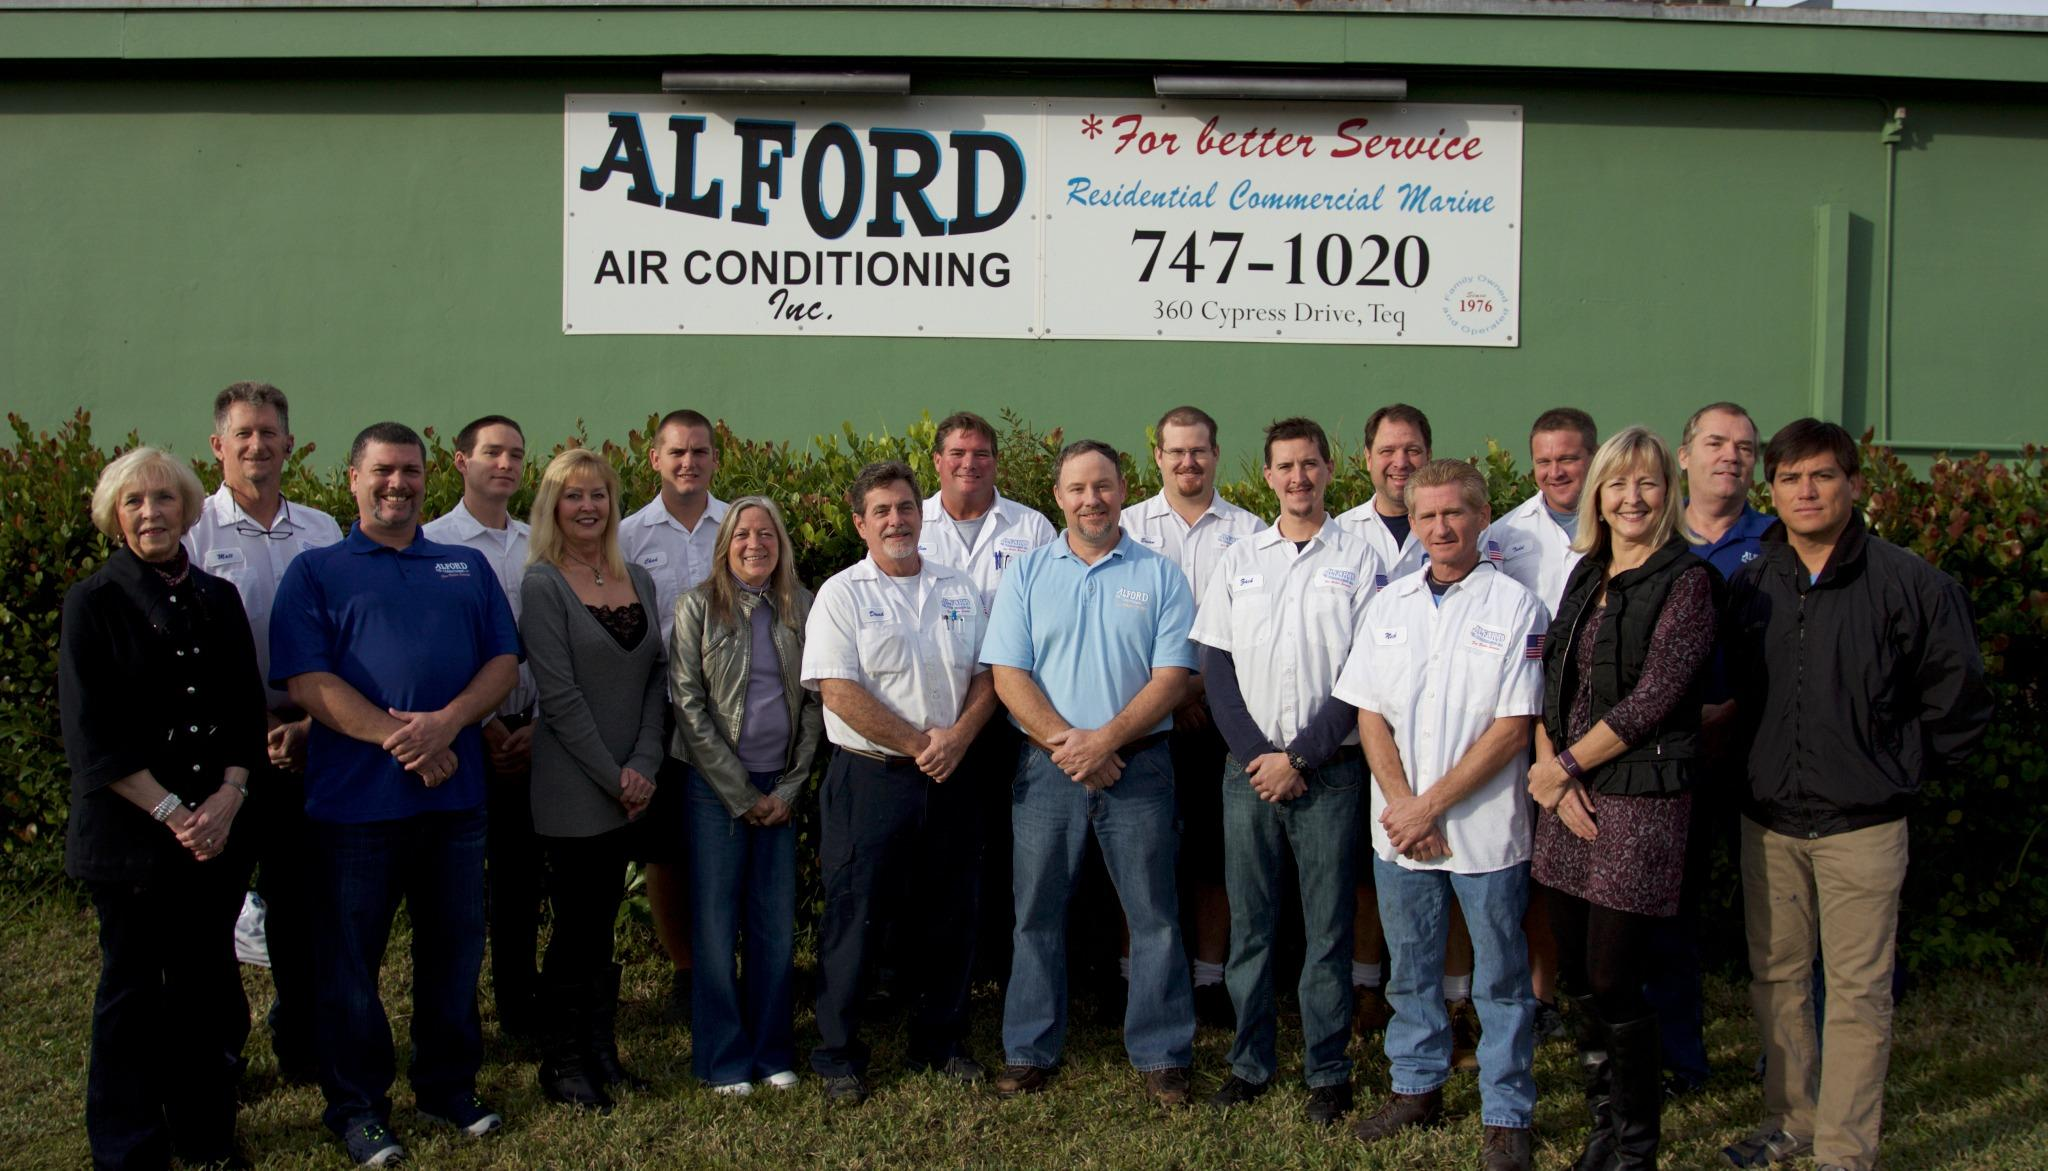 Alford Air Conditioning, Inc. image 0